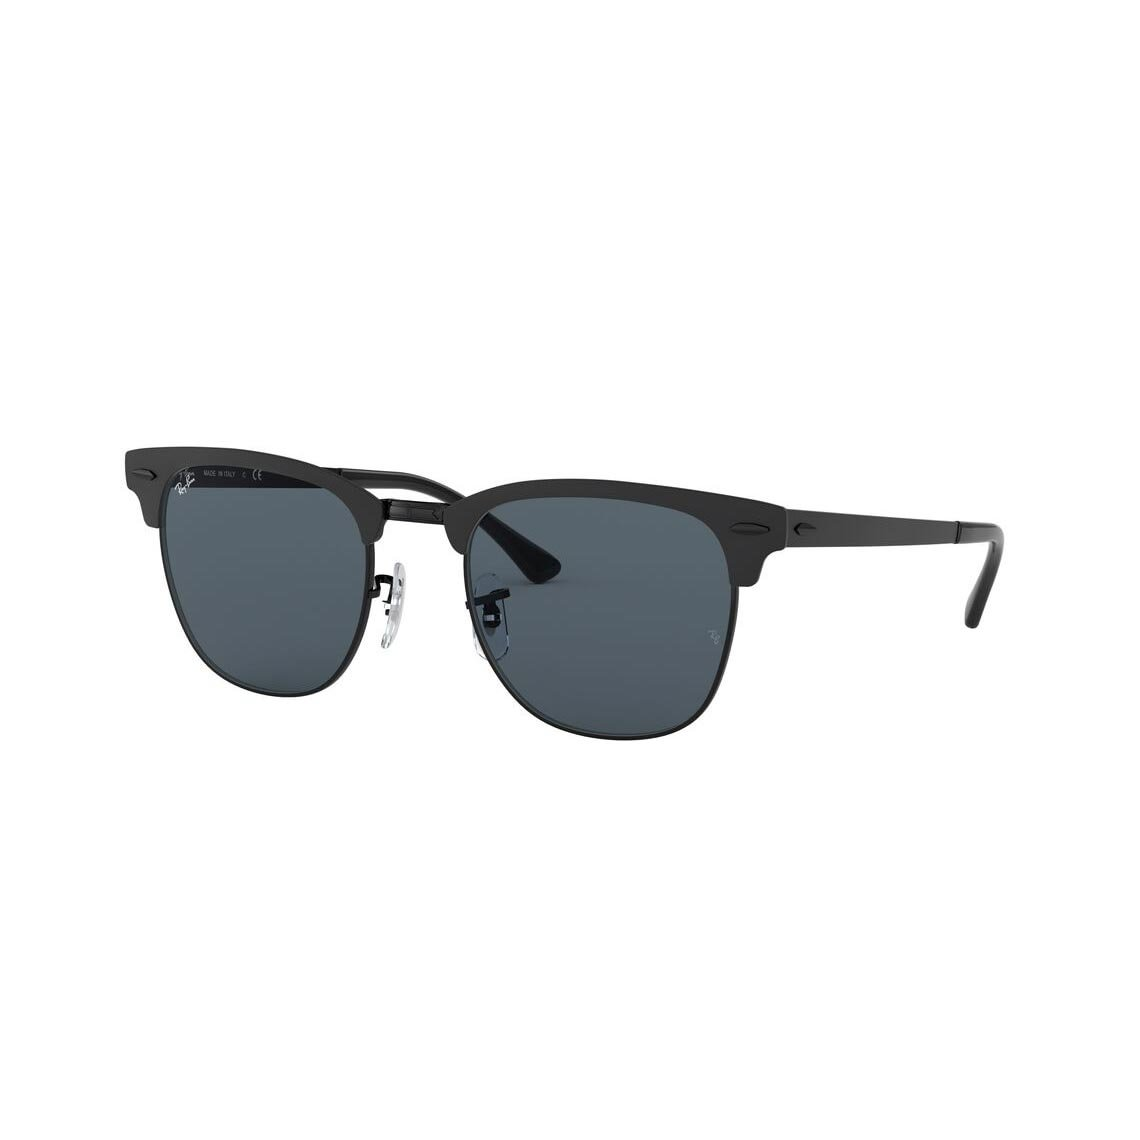 Ray-Ban Clubmaster Metal  RB3716 186/R5 51